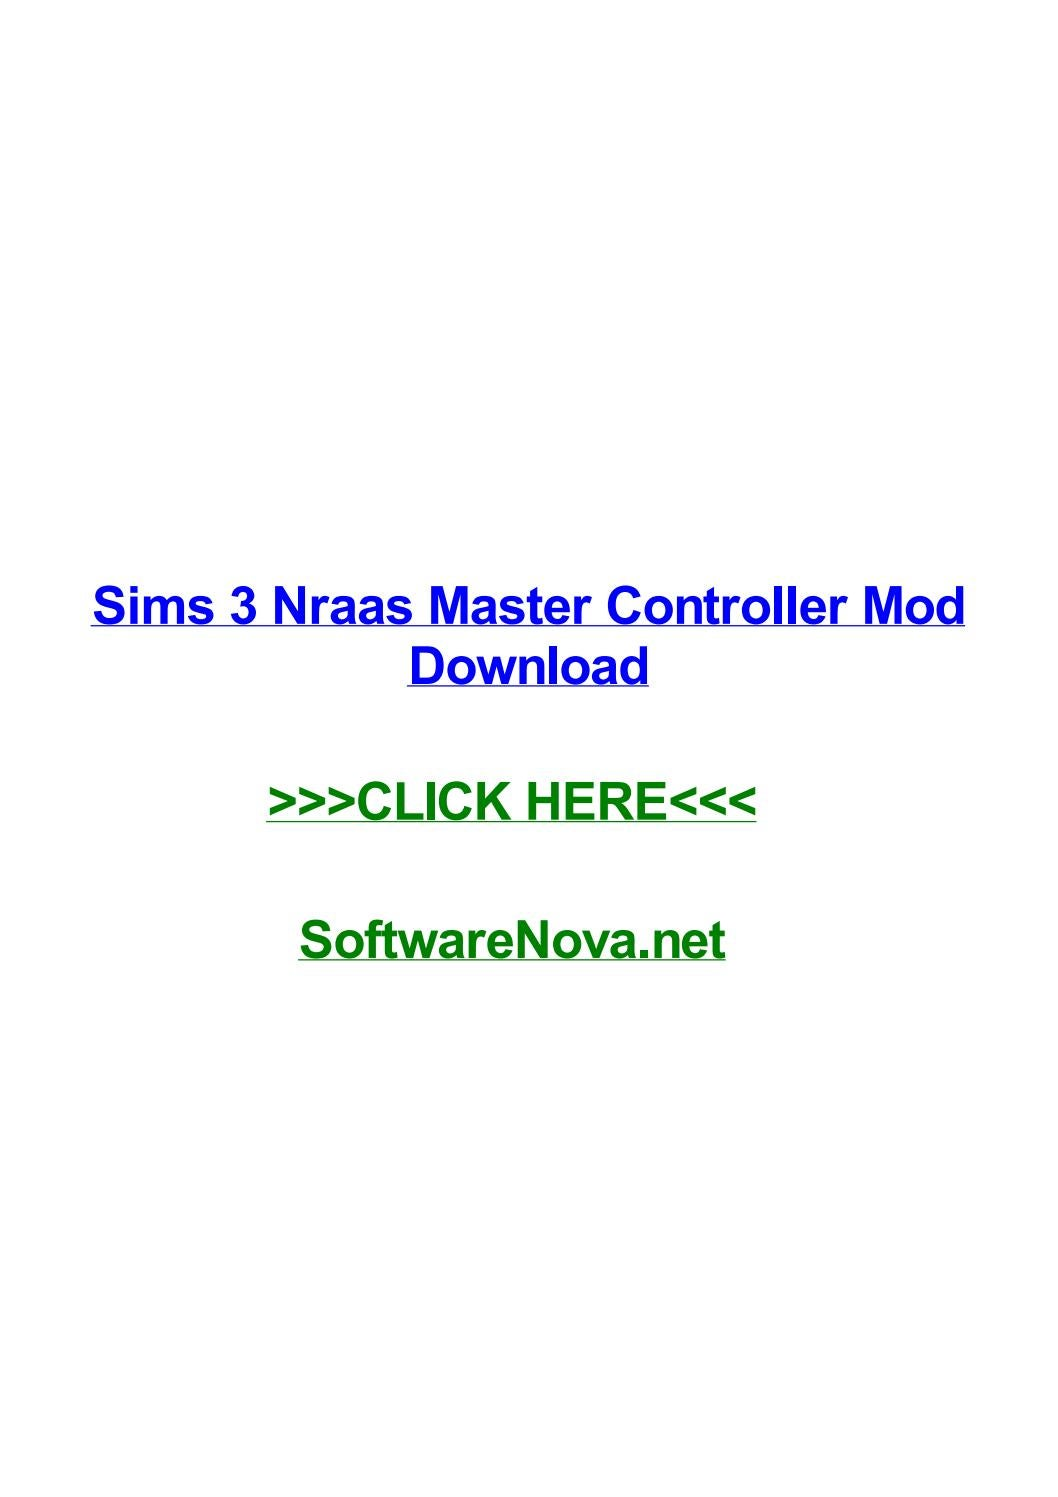 Sims 3 nraas master controller mod download by ronctyt - issuu